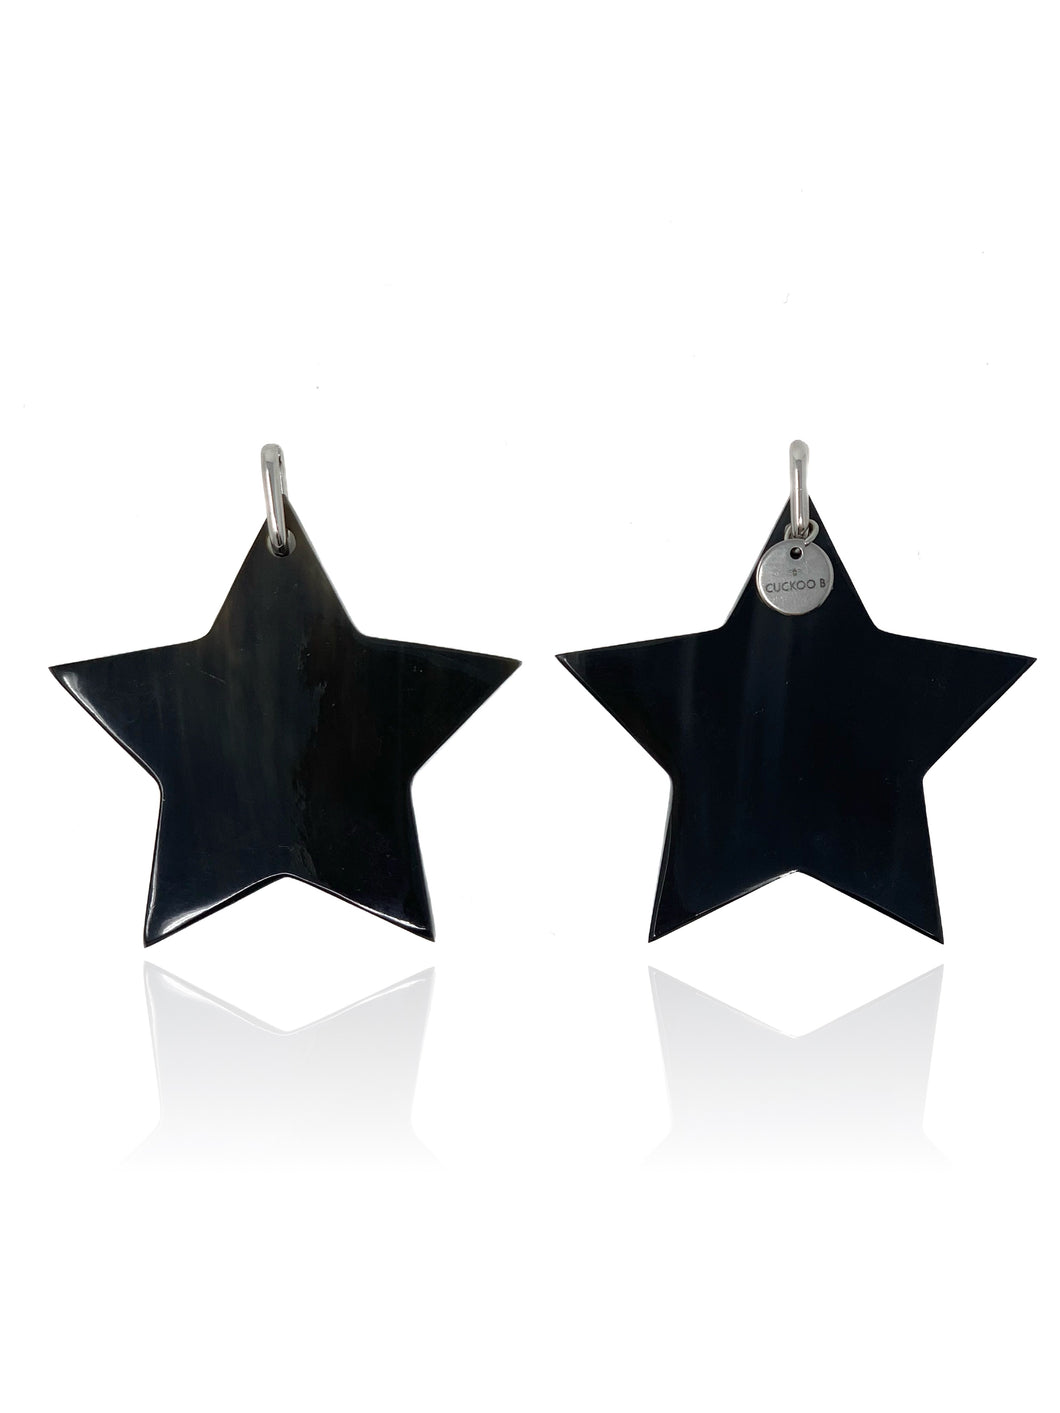 Francoise earrings black